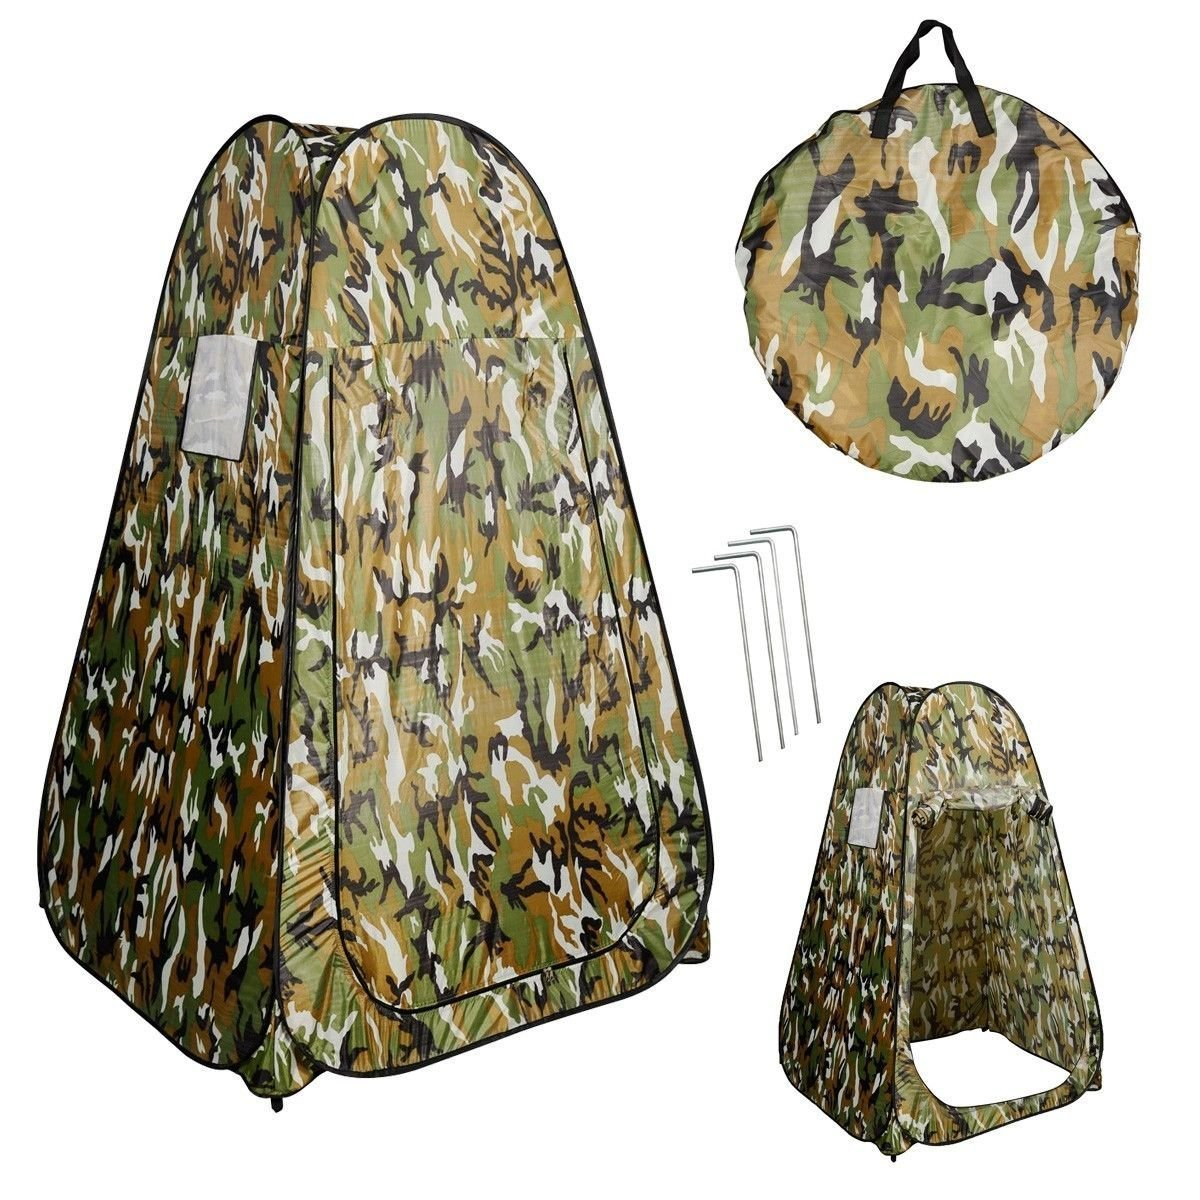 Generic O-8-O-3081-O m Camou Tent Camping mping R Toilet Changing ing Ten Portable Pop UP Toilet Room Camouflage shing B Fishing Bathing NV_1008003081-TYQFUS32 by Generic (Image #1)